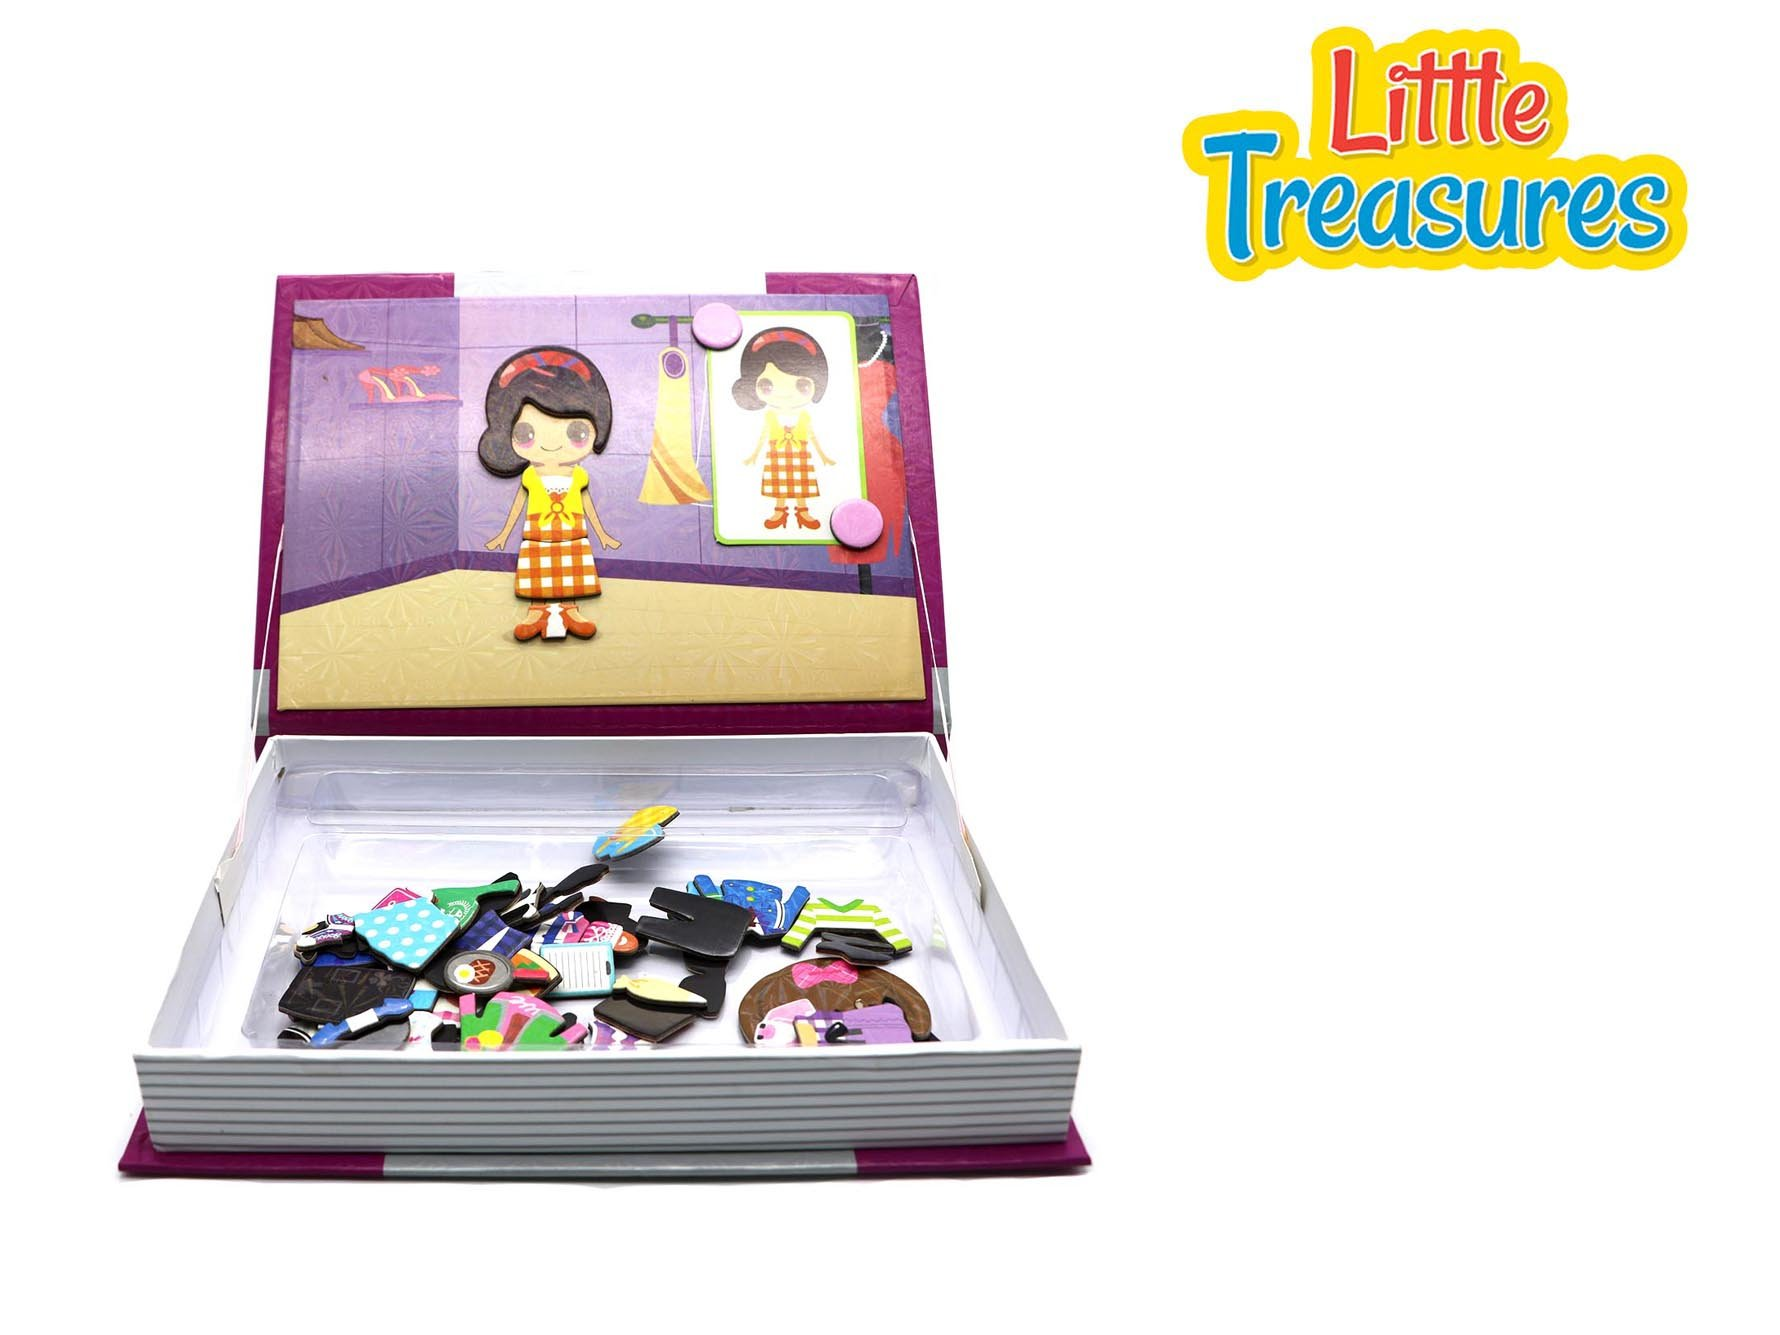 Little Treasures 81-Pcs Magnetic Dress-Up Set - Fashion Closet Dressup Girl Toy Book for Kids Ages 3 Plus by Little Treasures